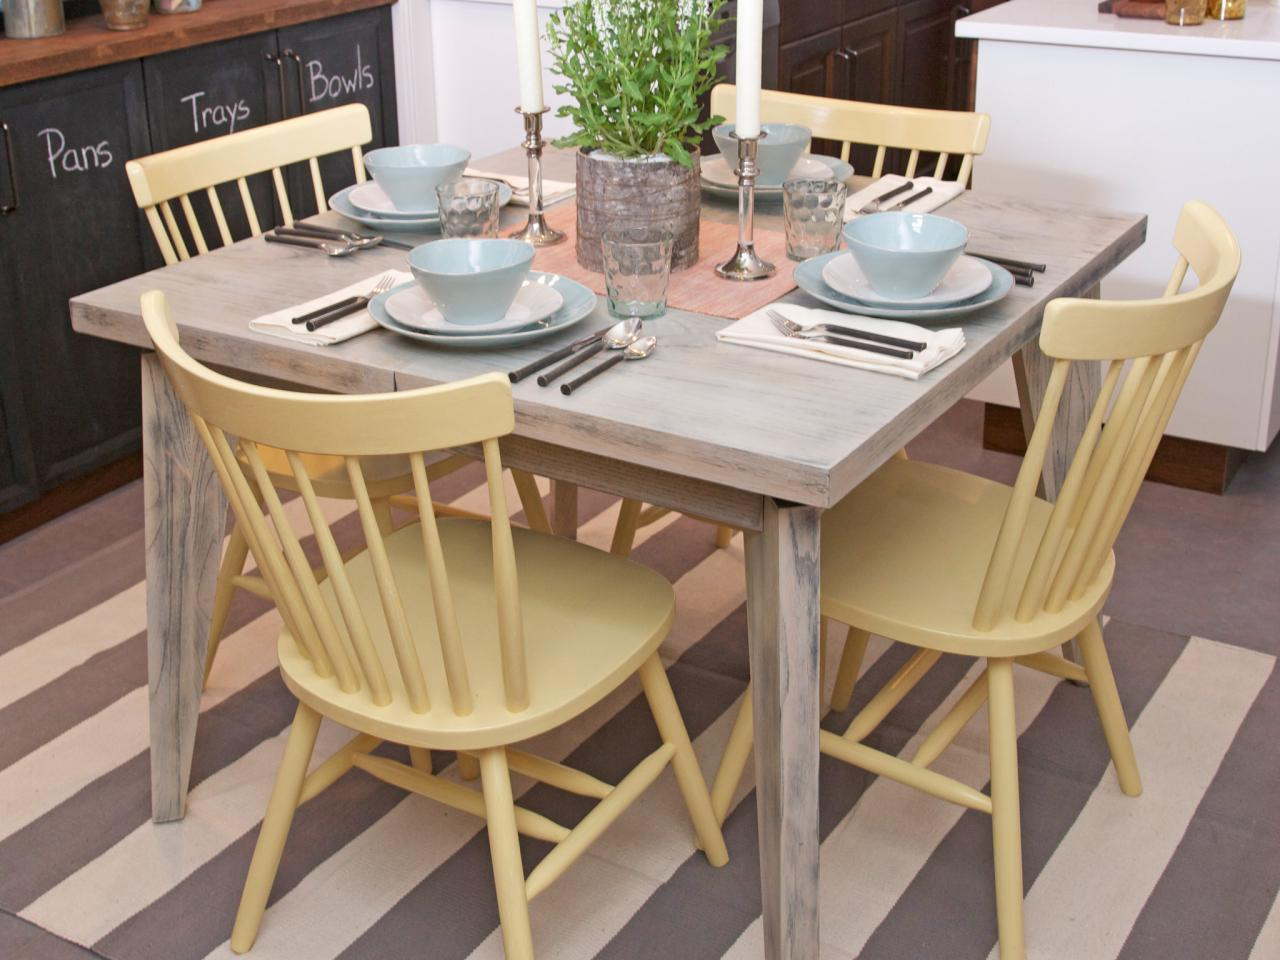 painting kitchen tables pictures ideas tips from hgtv ForPainted Kitchen Table Ideas